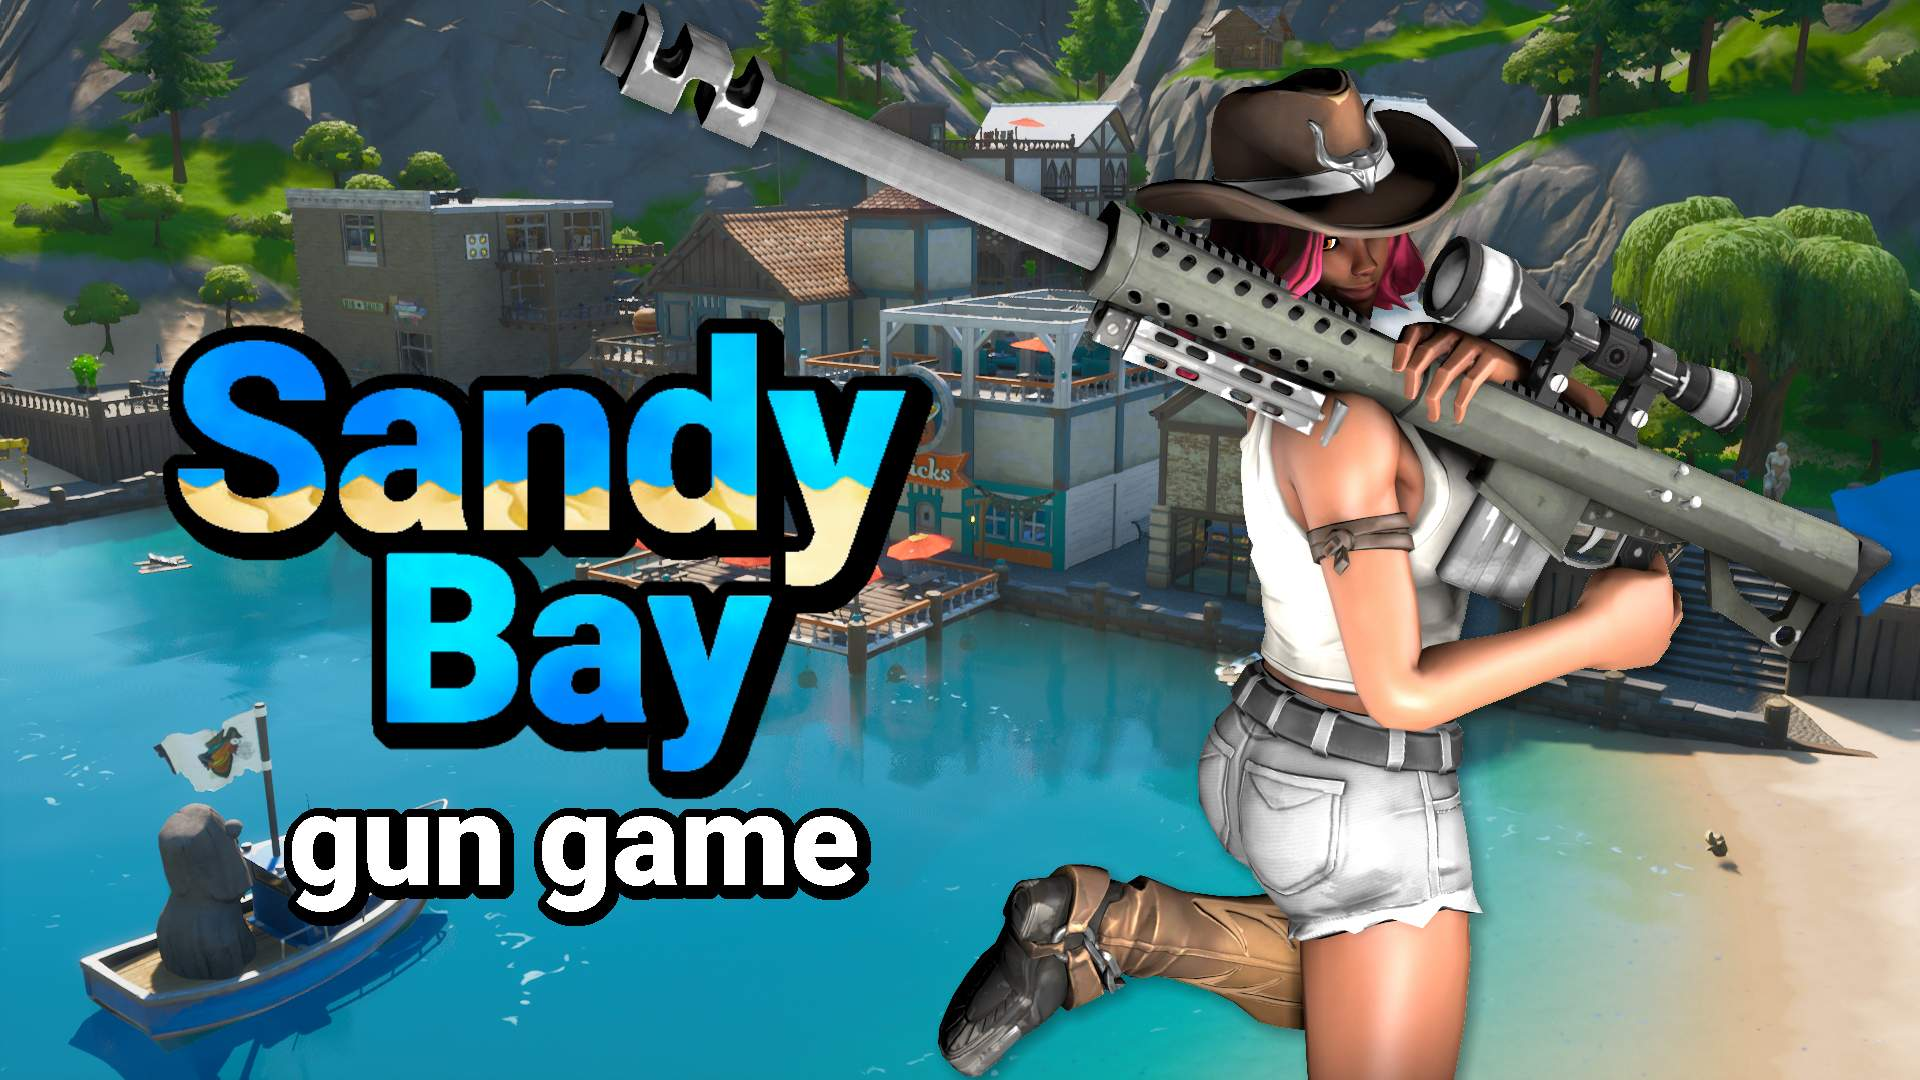 SANDY BAY - GUN GAME